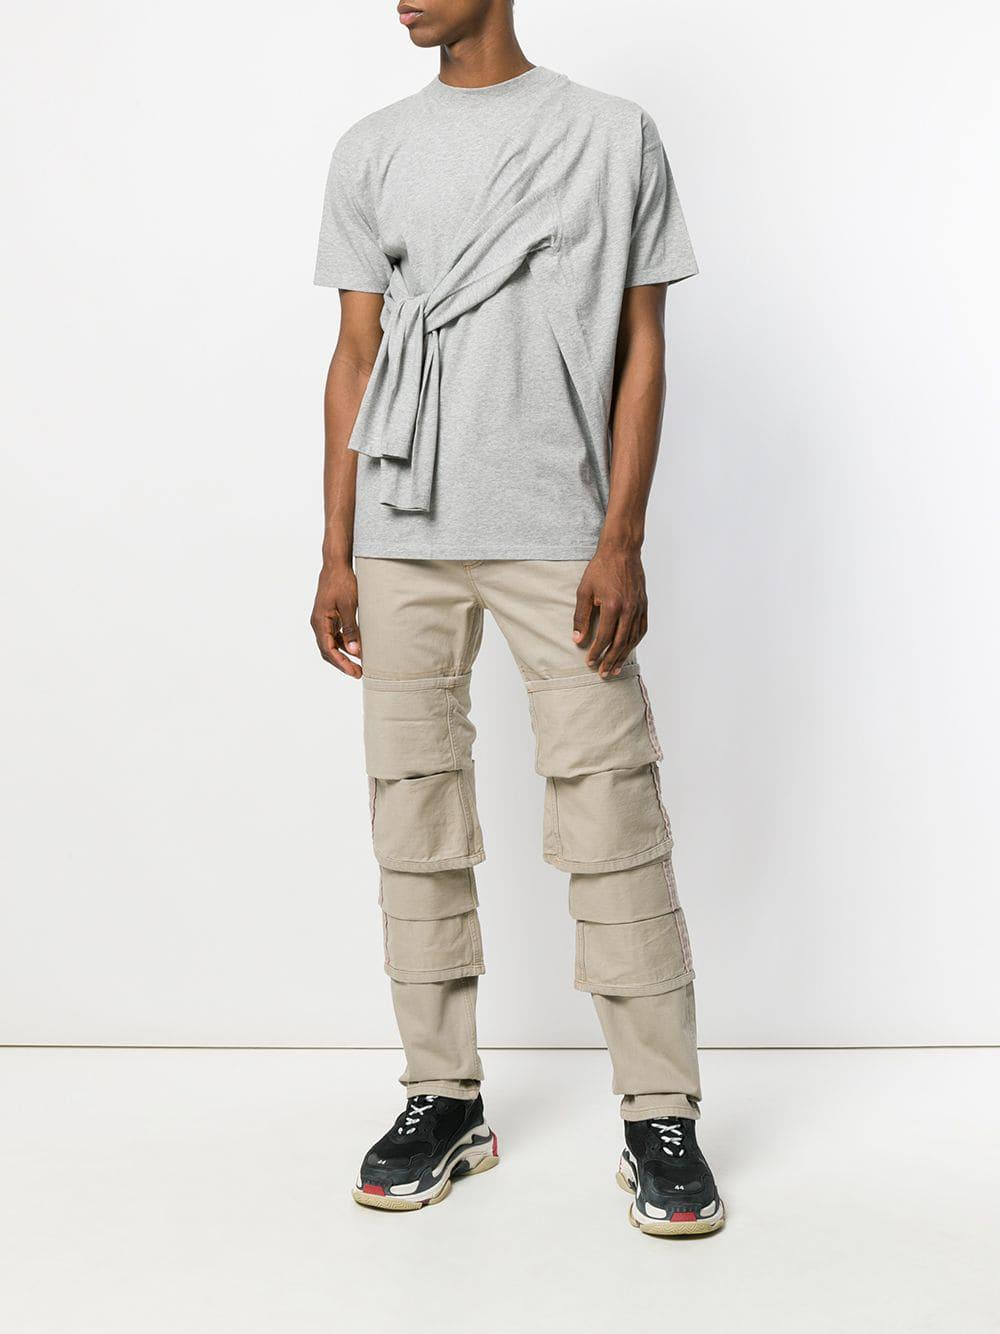 Y. Project Denim Layered Straight-leg Jeans in Natural for Men